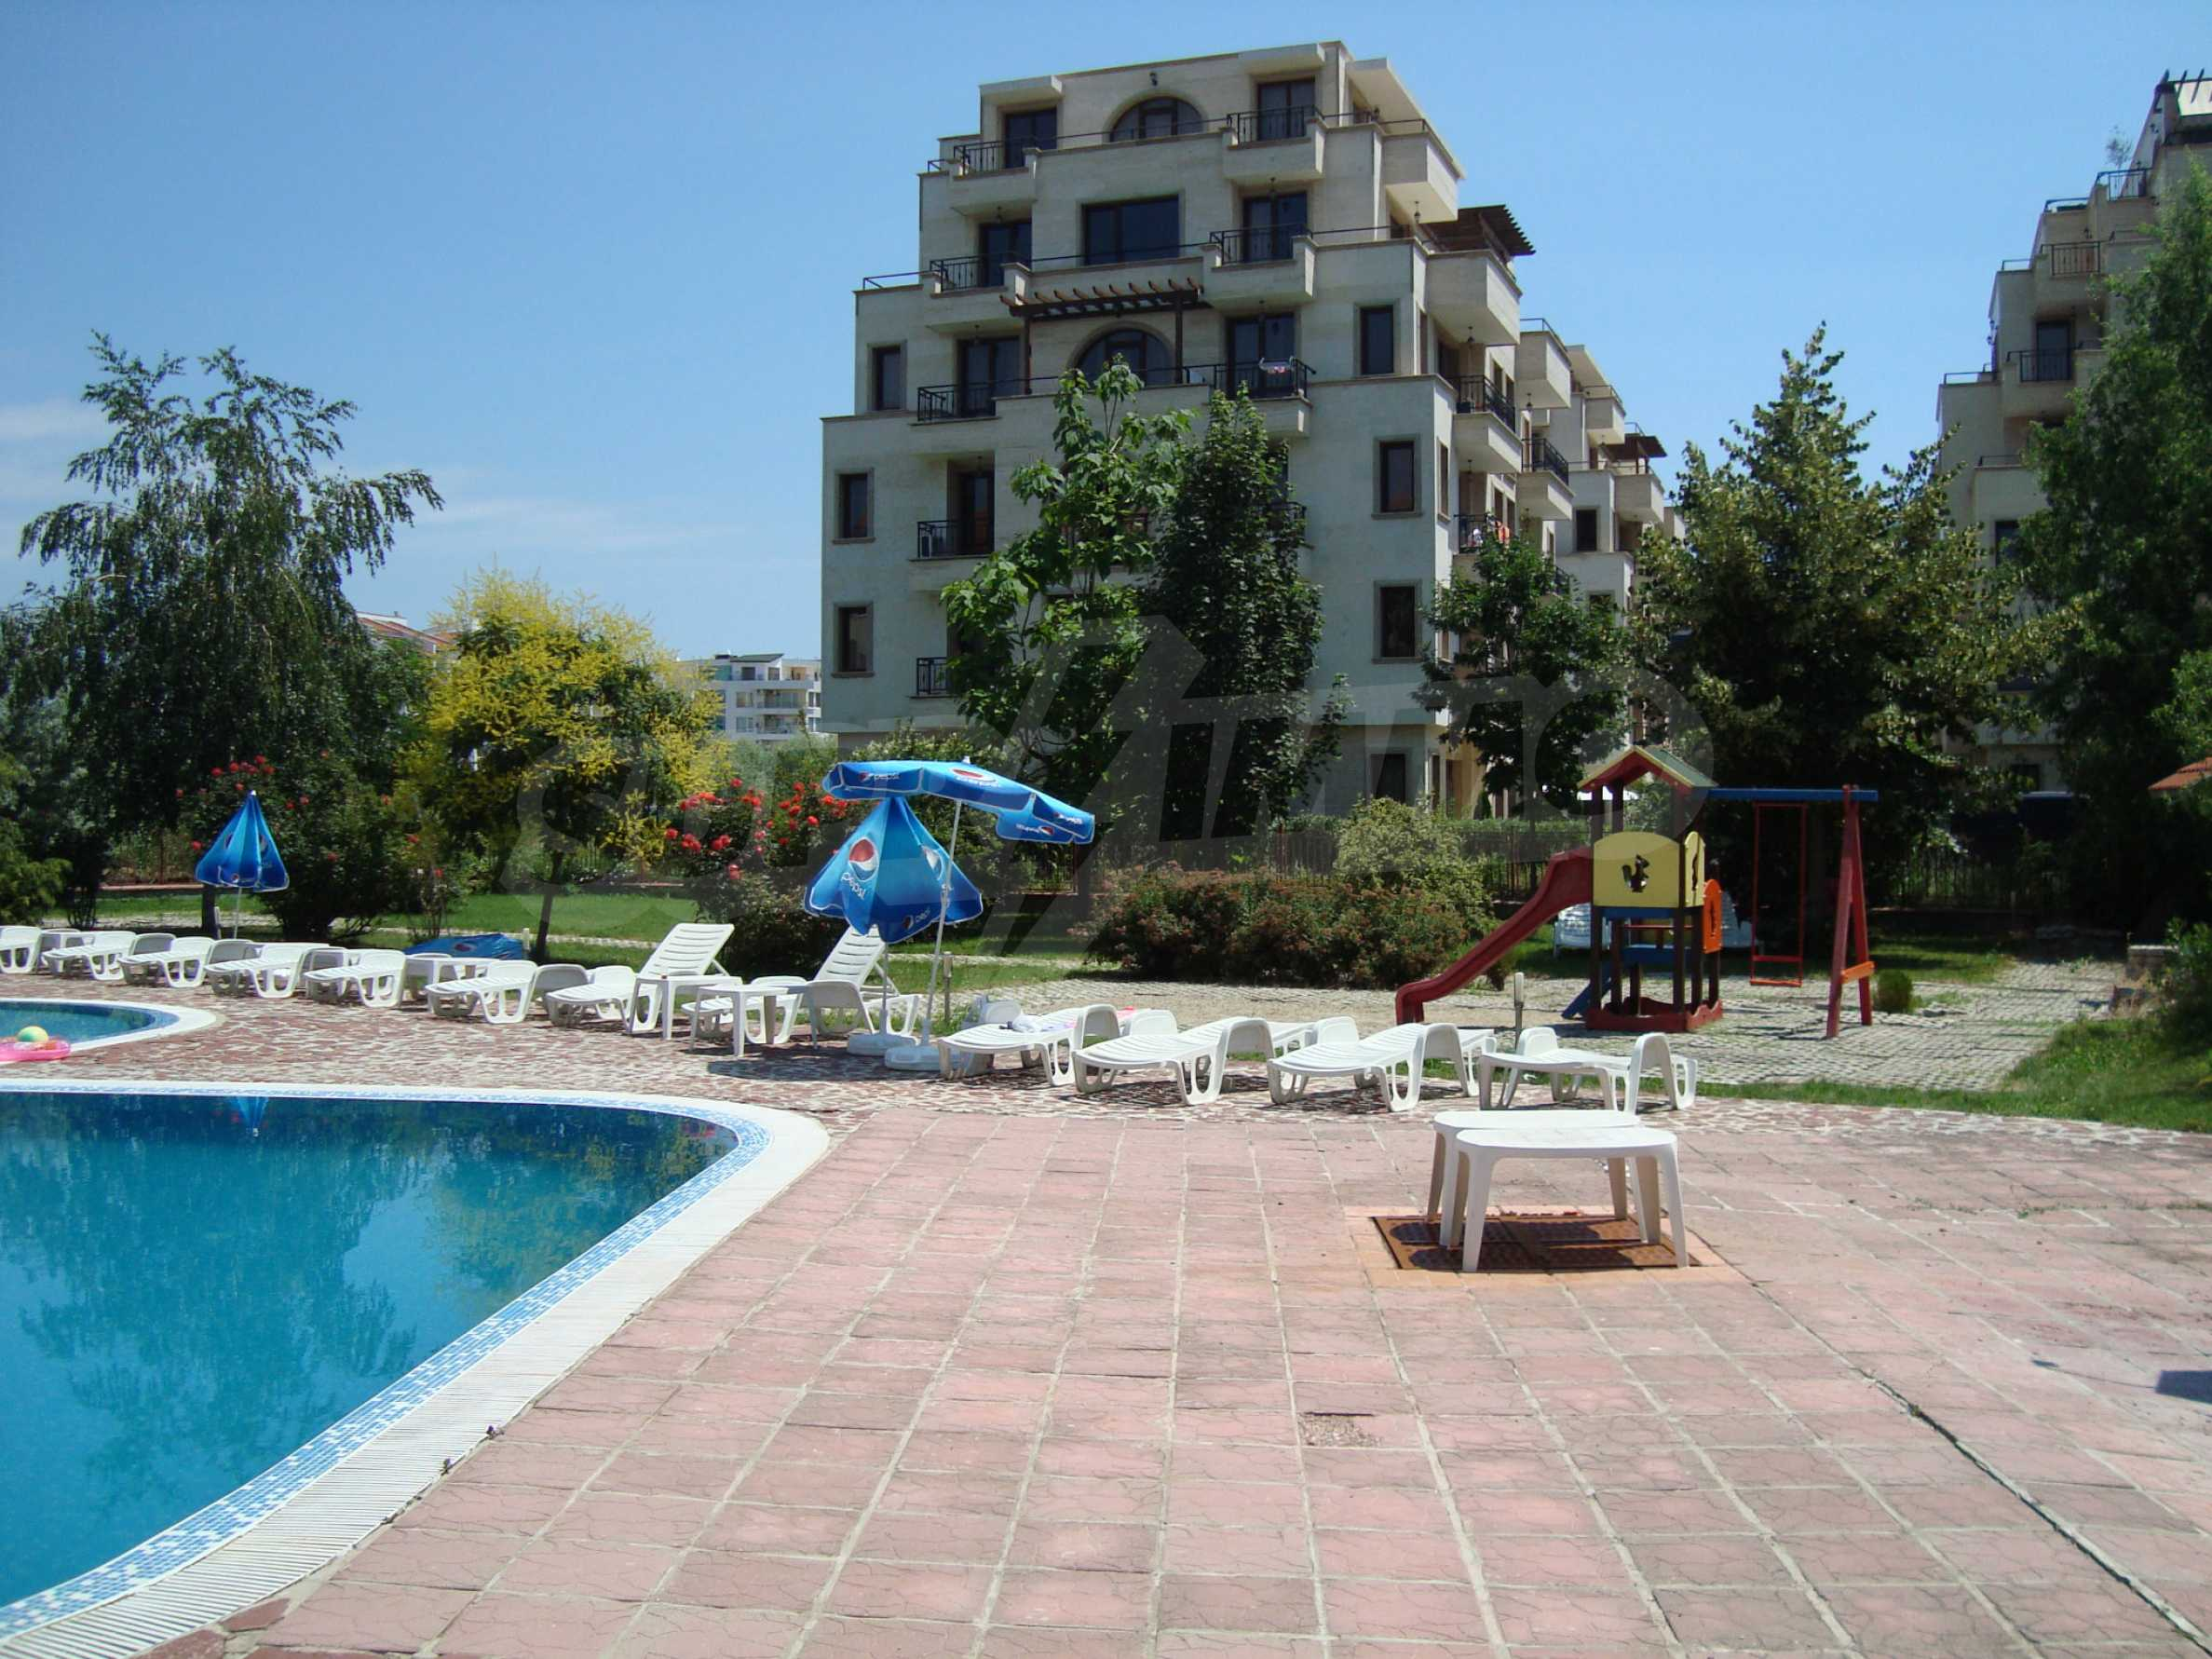 One-bedroom apartment in Prestige City 1 complex in Sunny beach 30